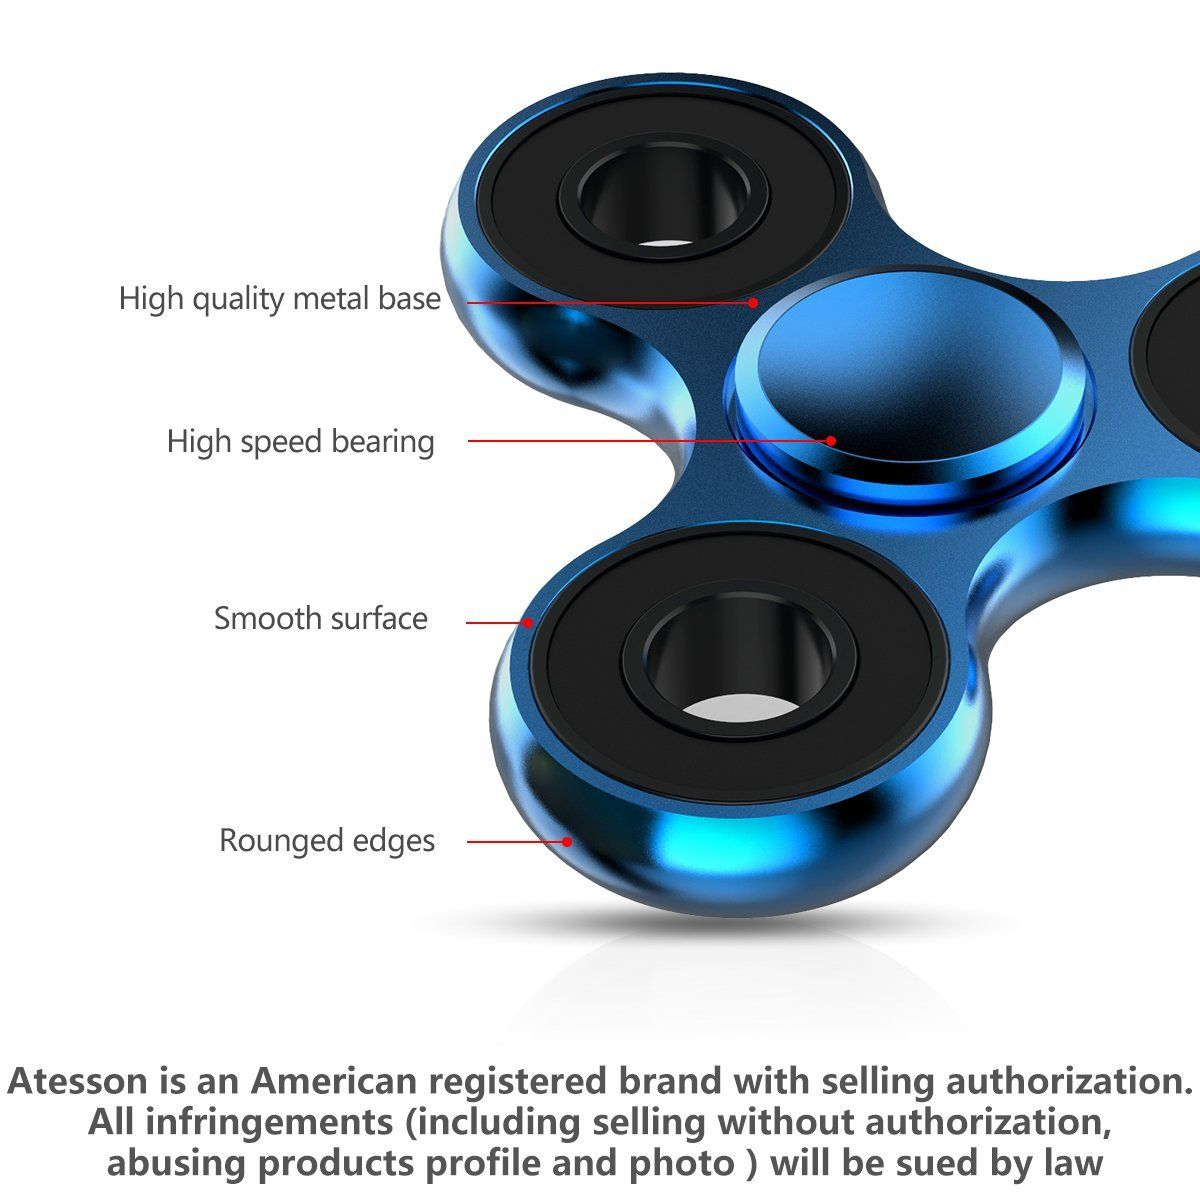 ATESSON Fidget Spinner Toy - Ultra Durable Stainless Steel Bearing High Speed 1-5 Min Spins Precision Metal Material Hand spinner EDC ADHD Focus Anxiety Stress Relief Boredom Killing Time Toys